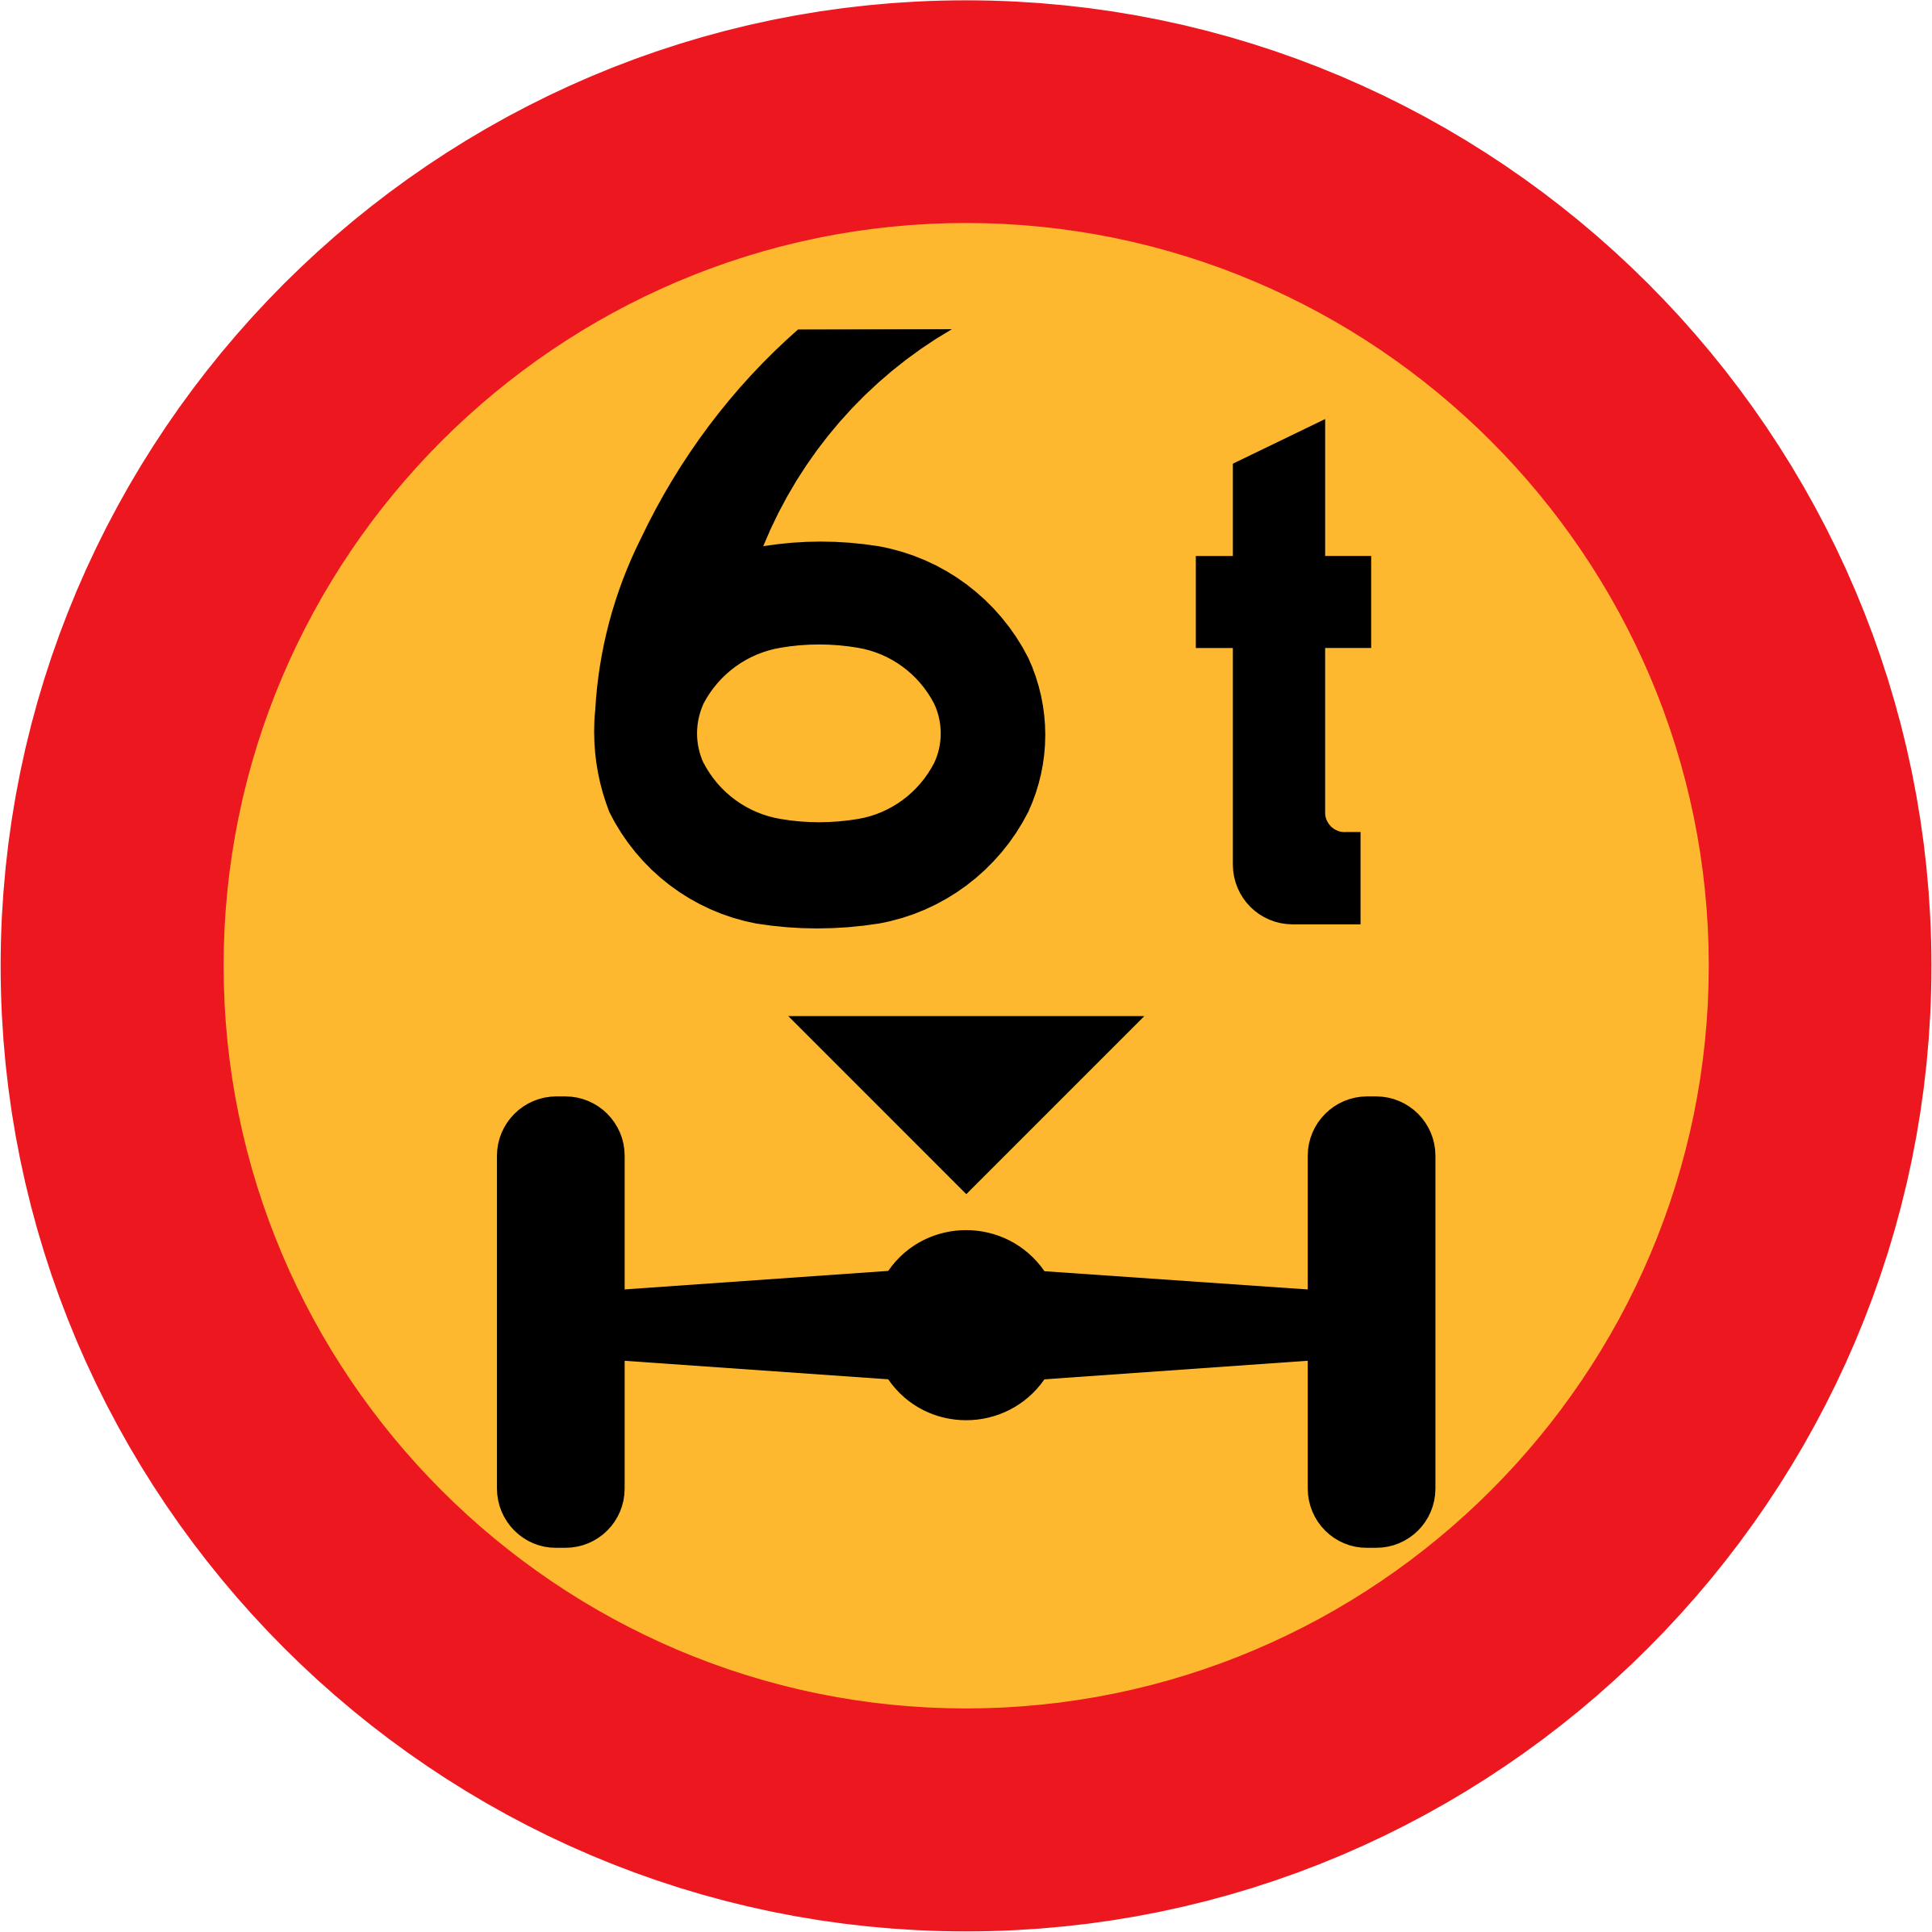 6t wheelbase sign by ryanlerch